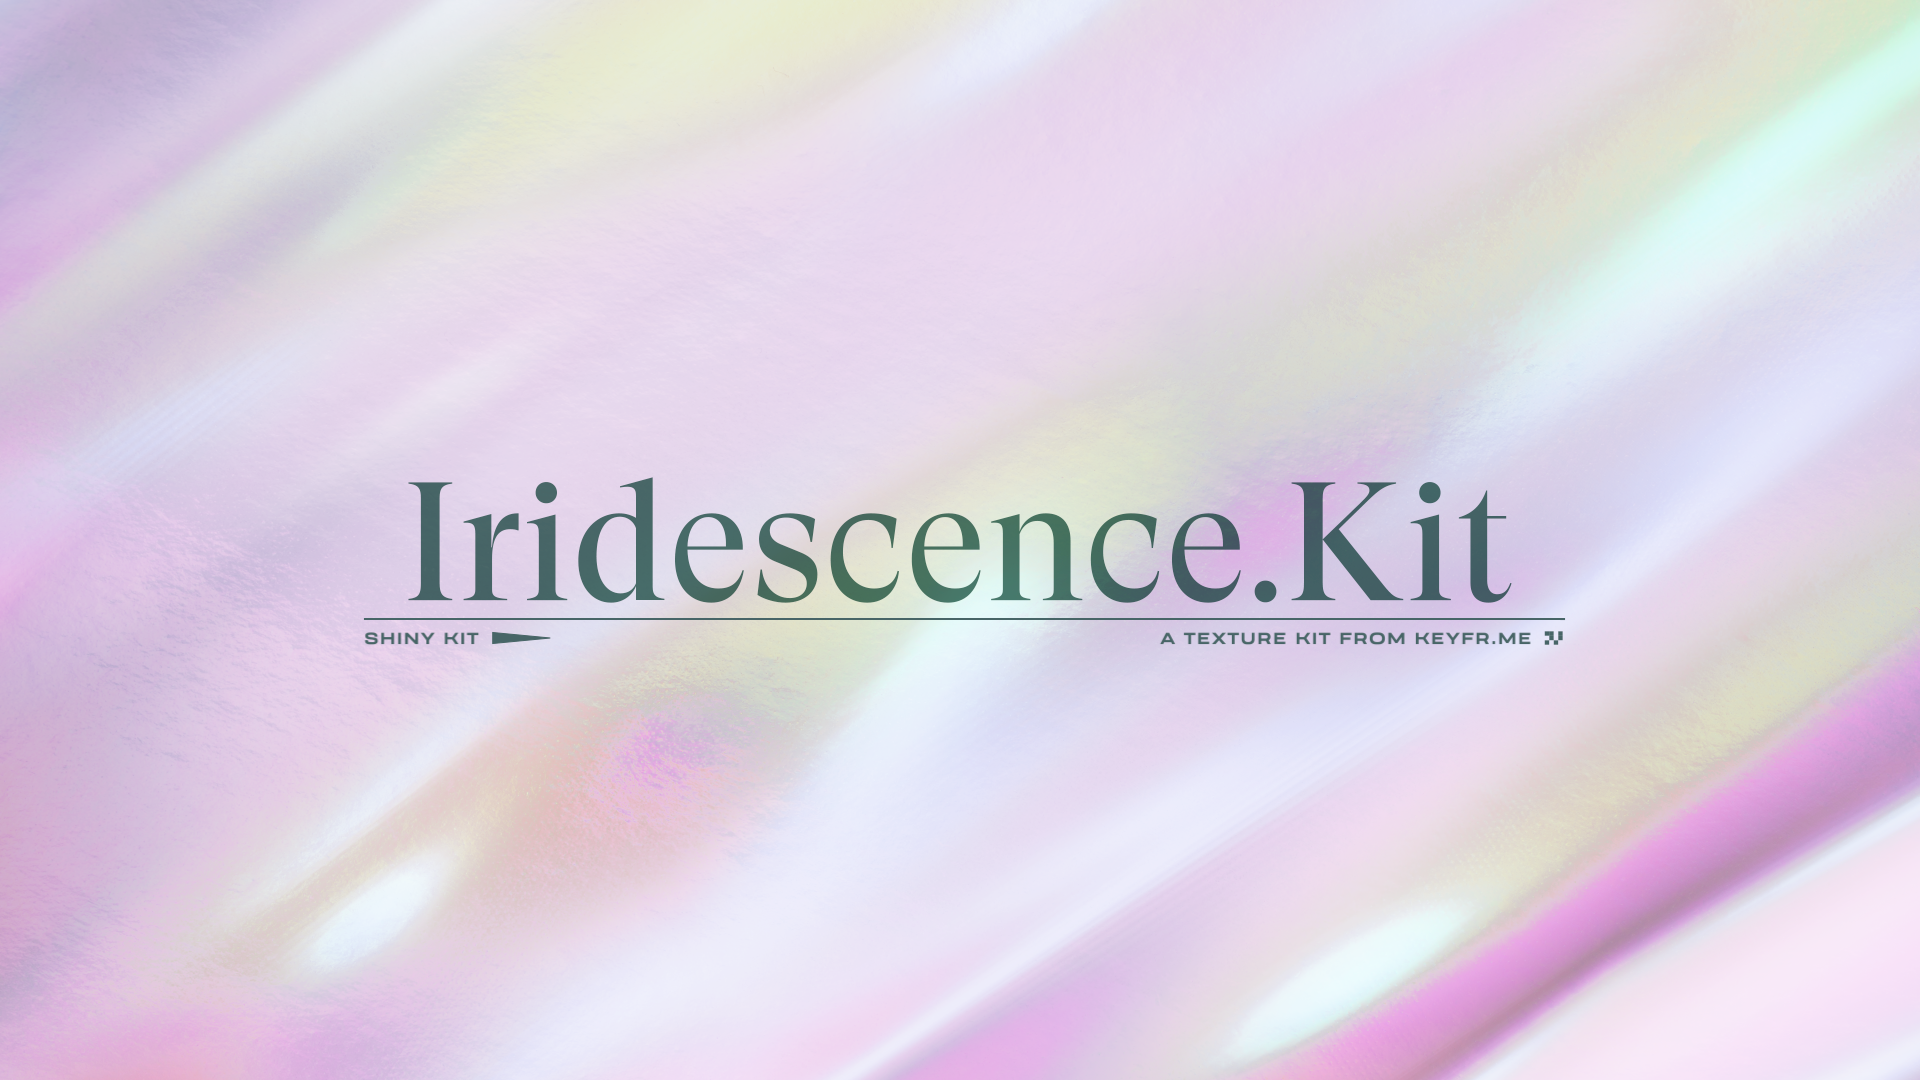 Iridescence.Kit